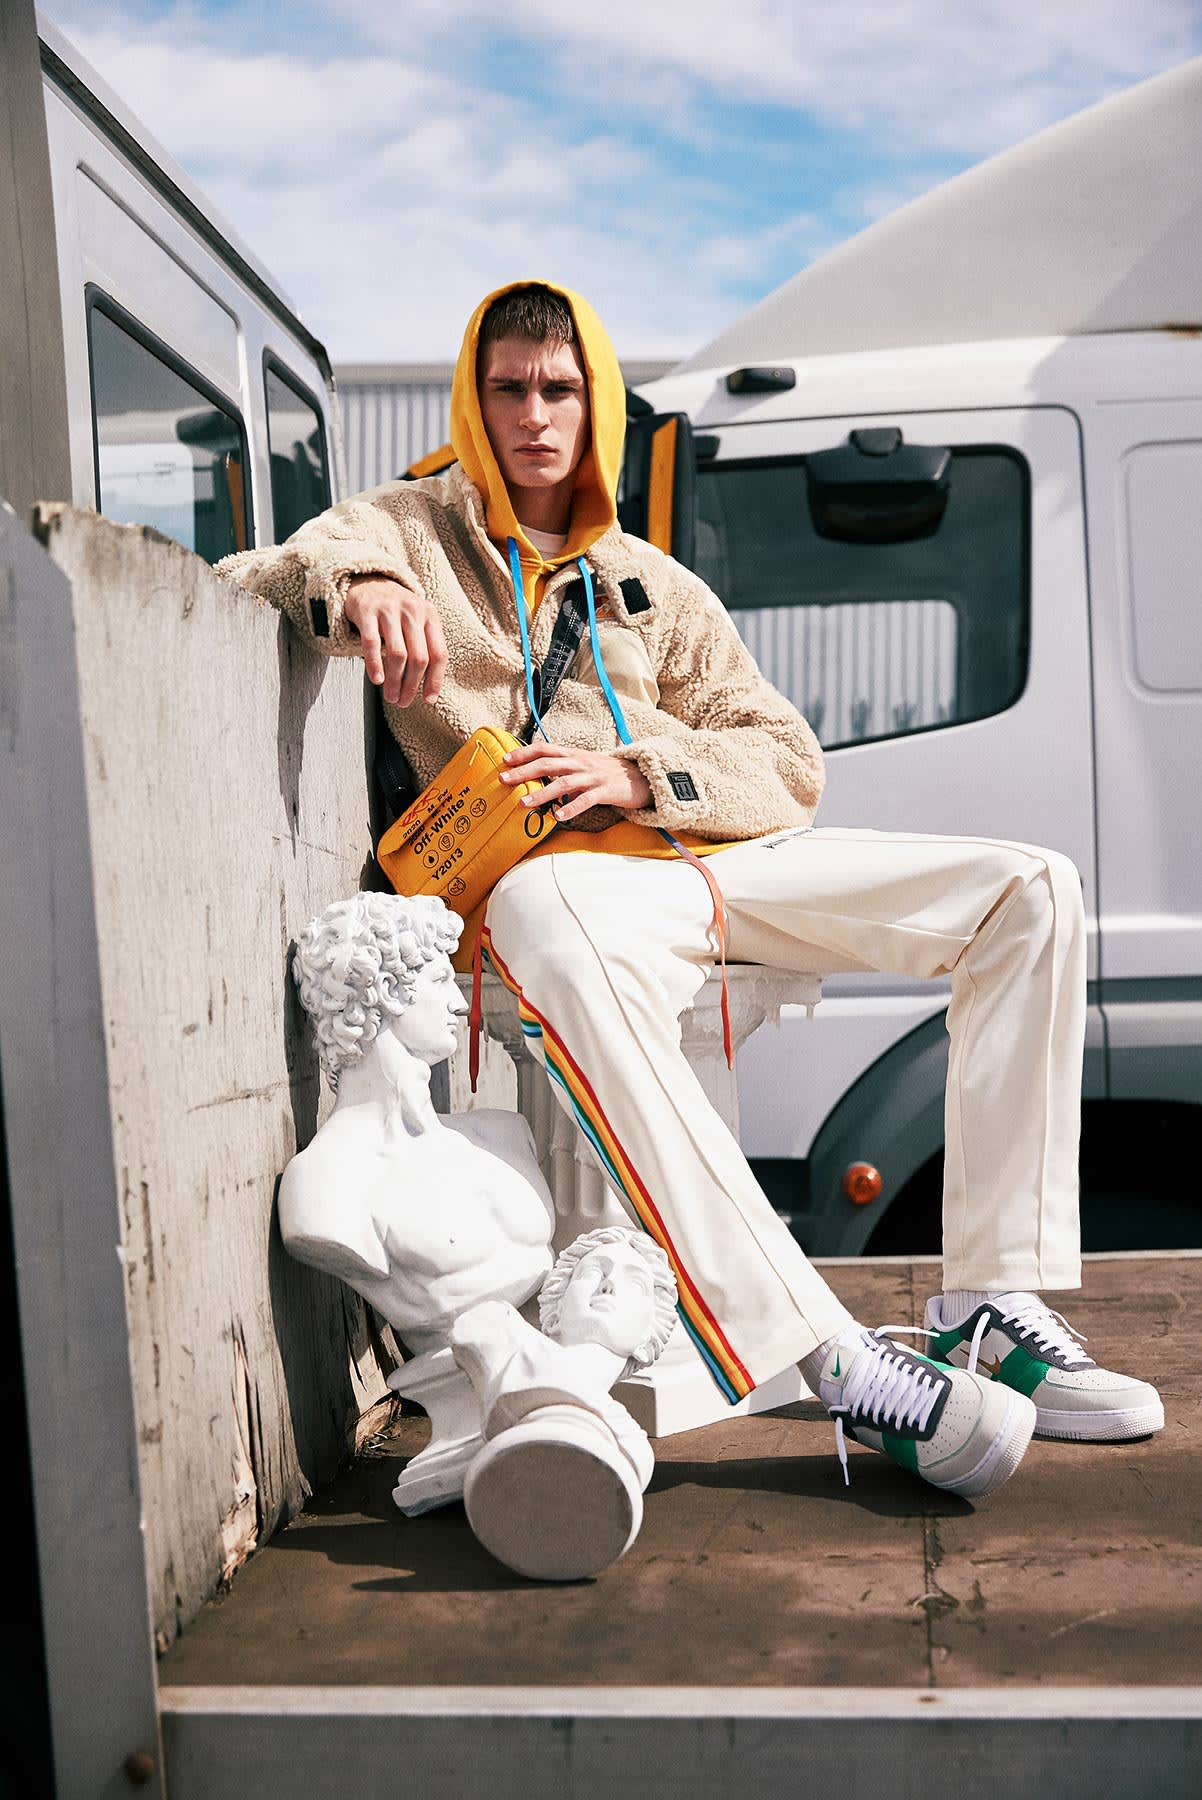 New Milan 2.0 END. AW19 Editorial .01 - Model wears Off-White and Palm Angels